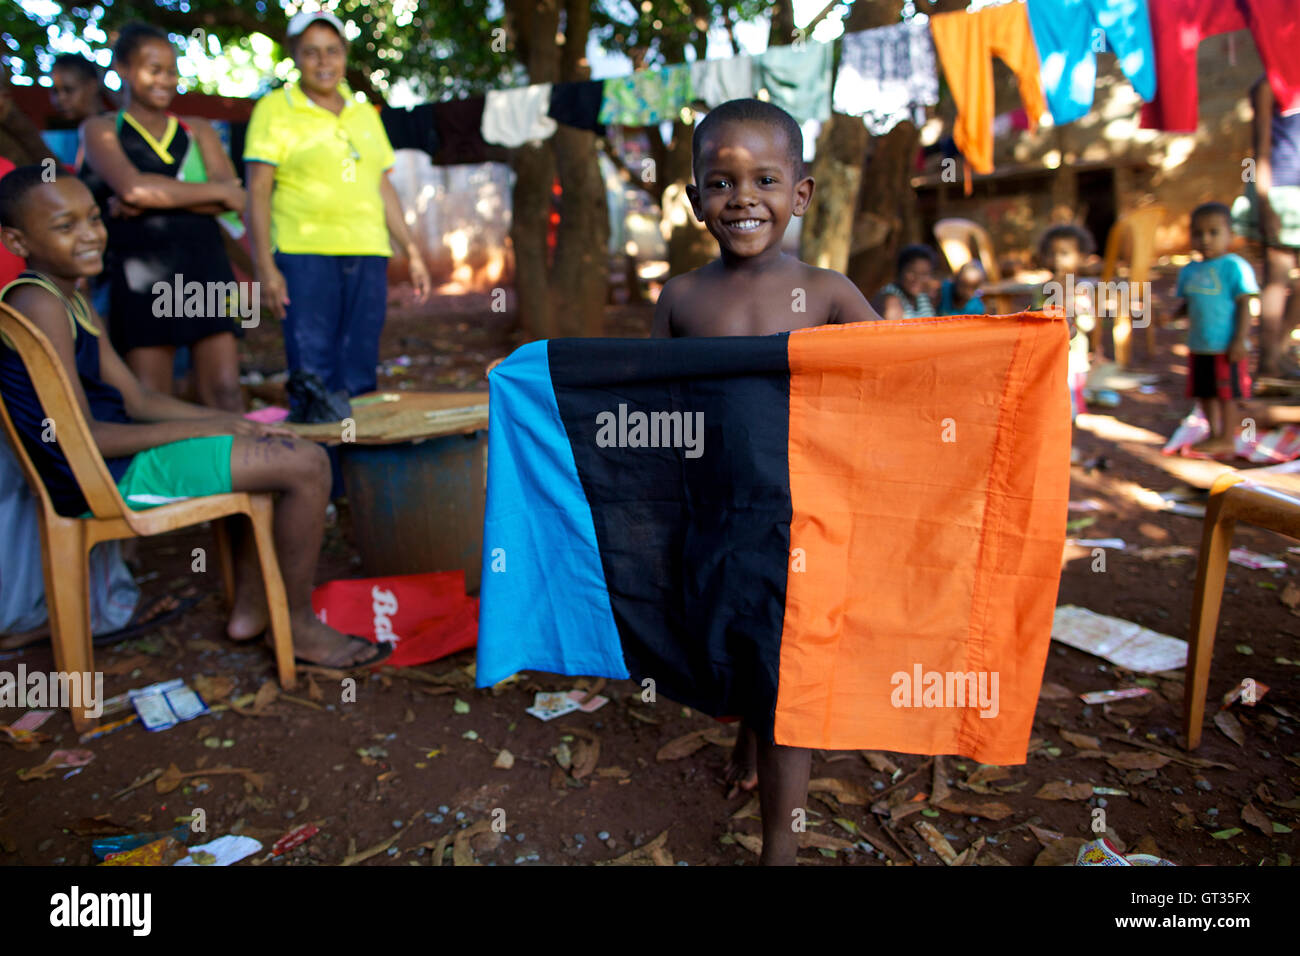 Chagos -  04/04/2012  -  Mauritius  -  Some Chagossiana refugees in the slum of Baie du Tombeau, Mauritius, with Stock Photo